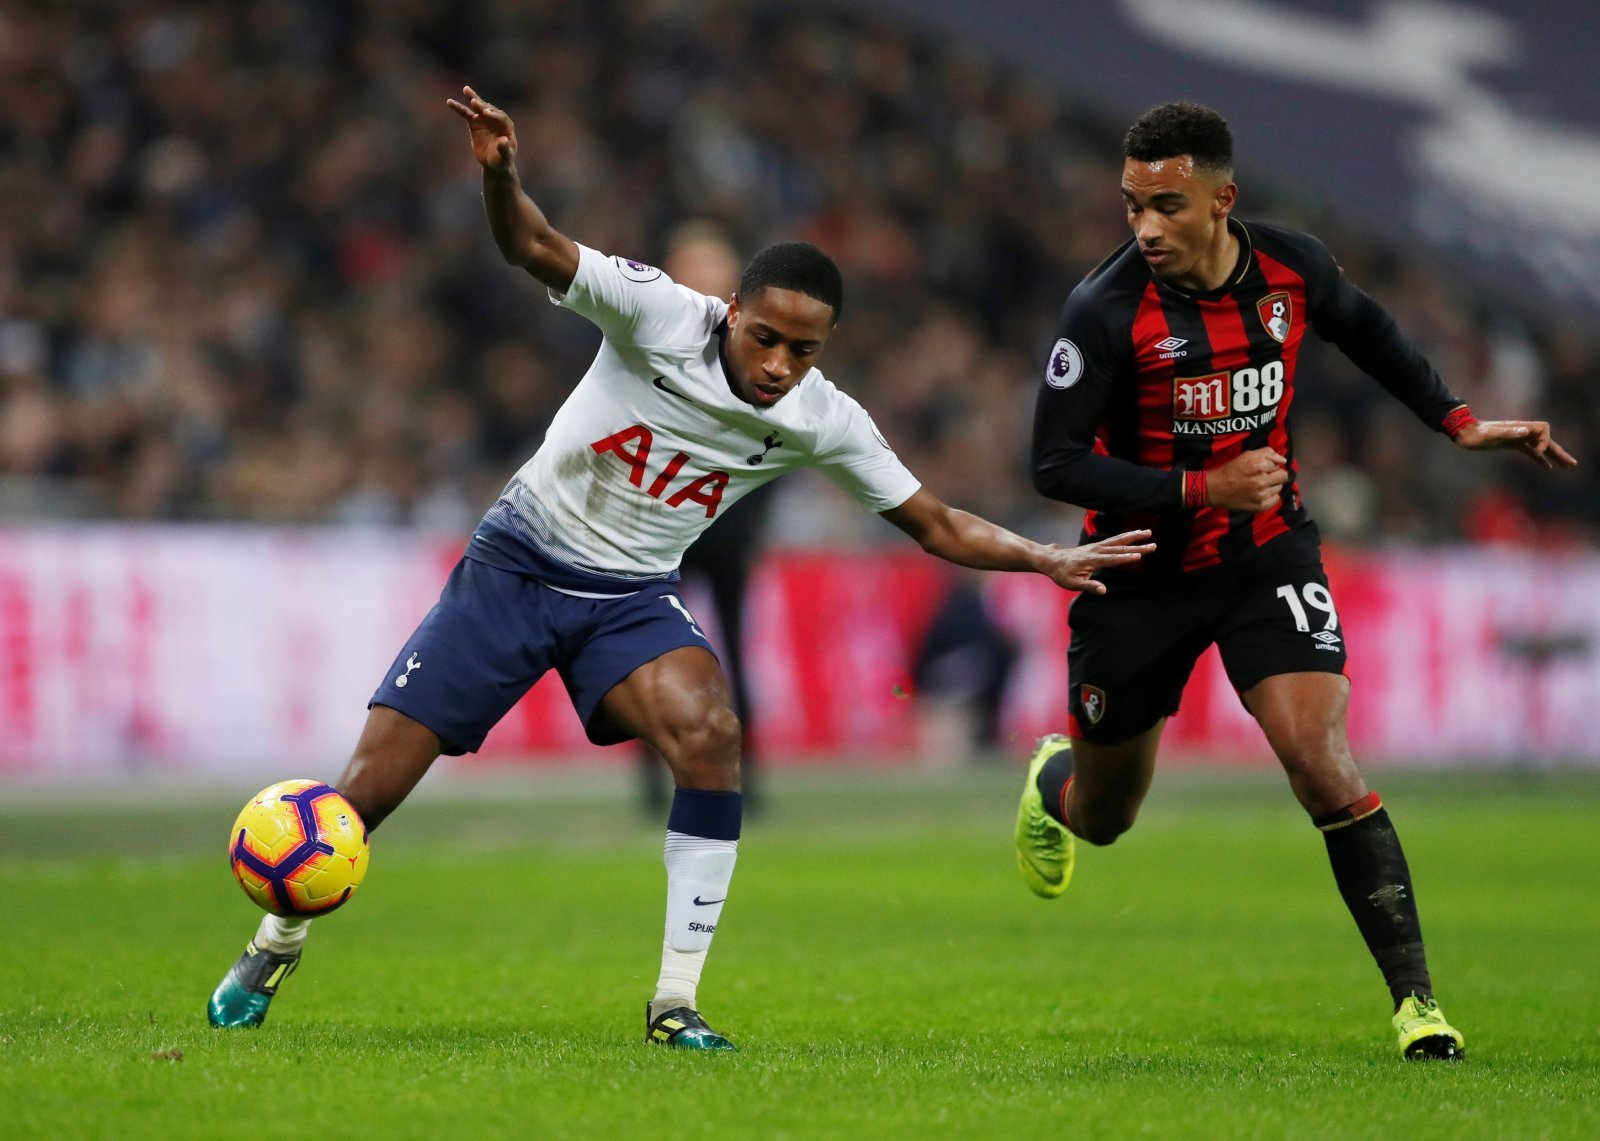 Tottenham: Kyle Walker-Peters could replace Kieran Trippier next season